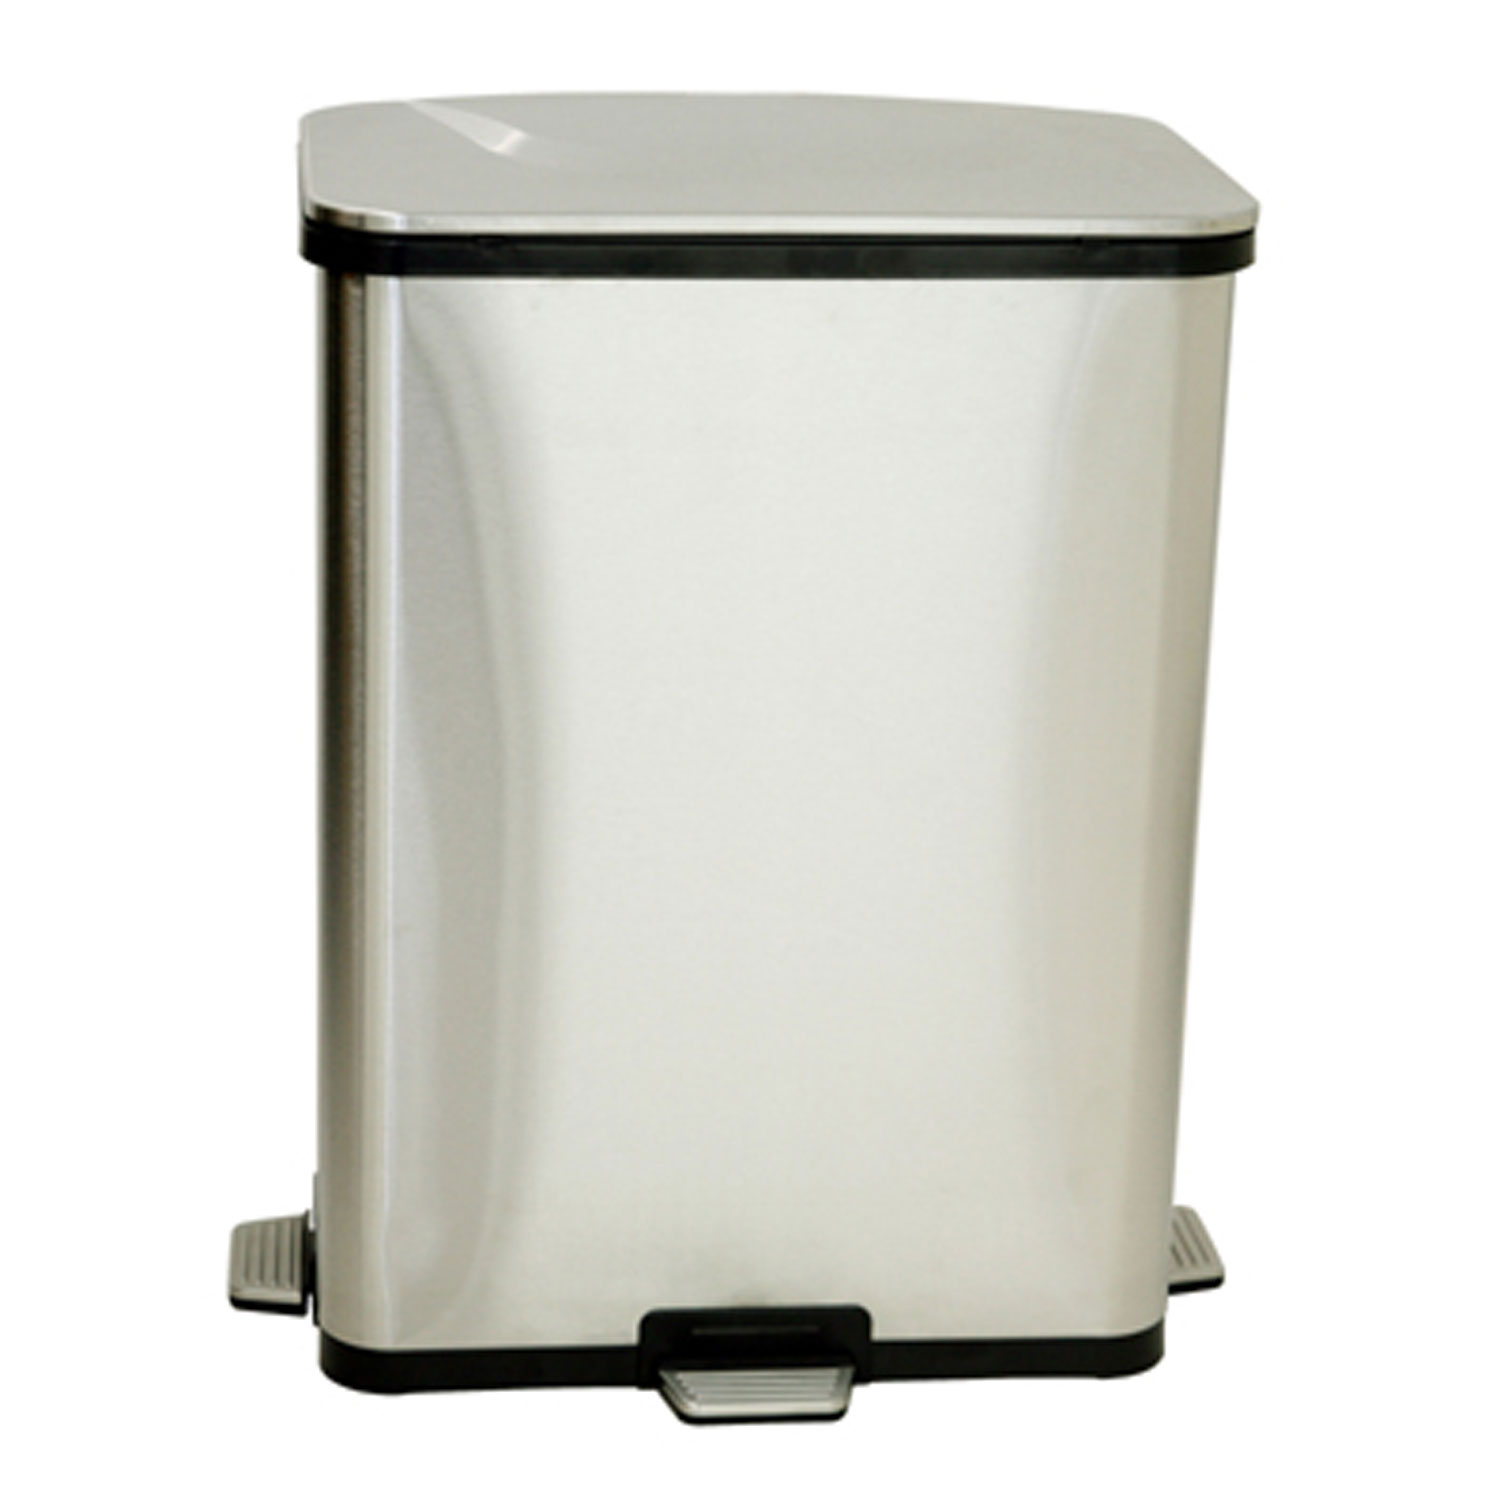 Corner Stainless Steel Trash Can Step Sensor Trash Can By Itouchless In Kitchen Trash Cans